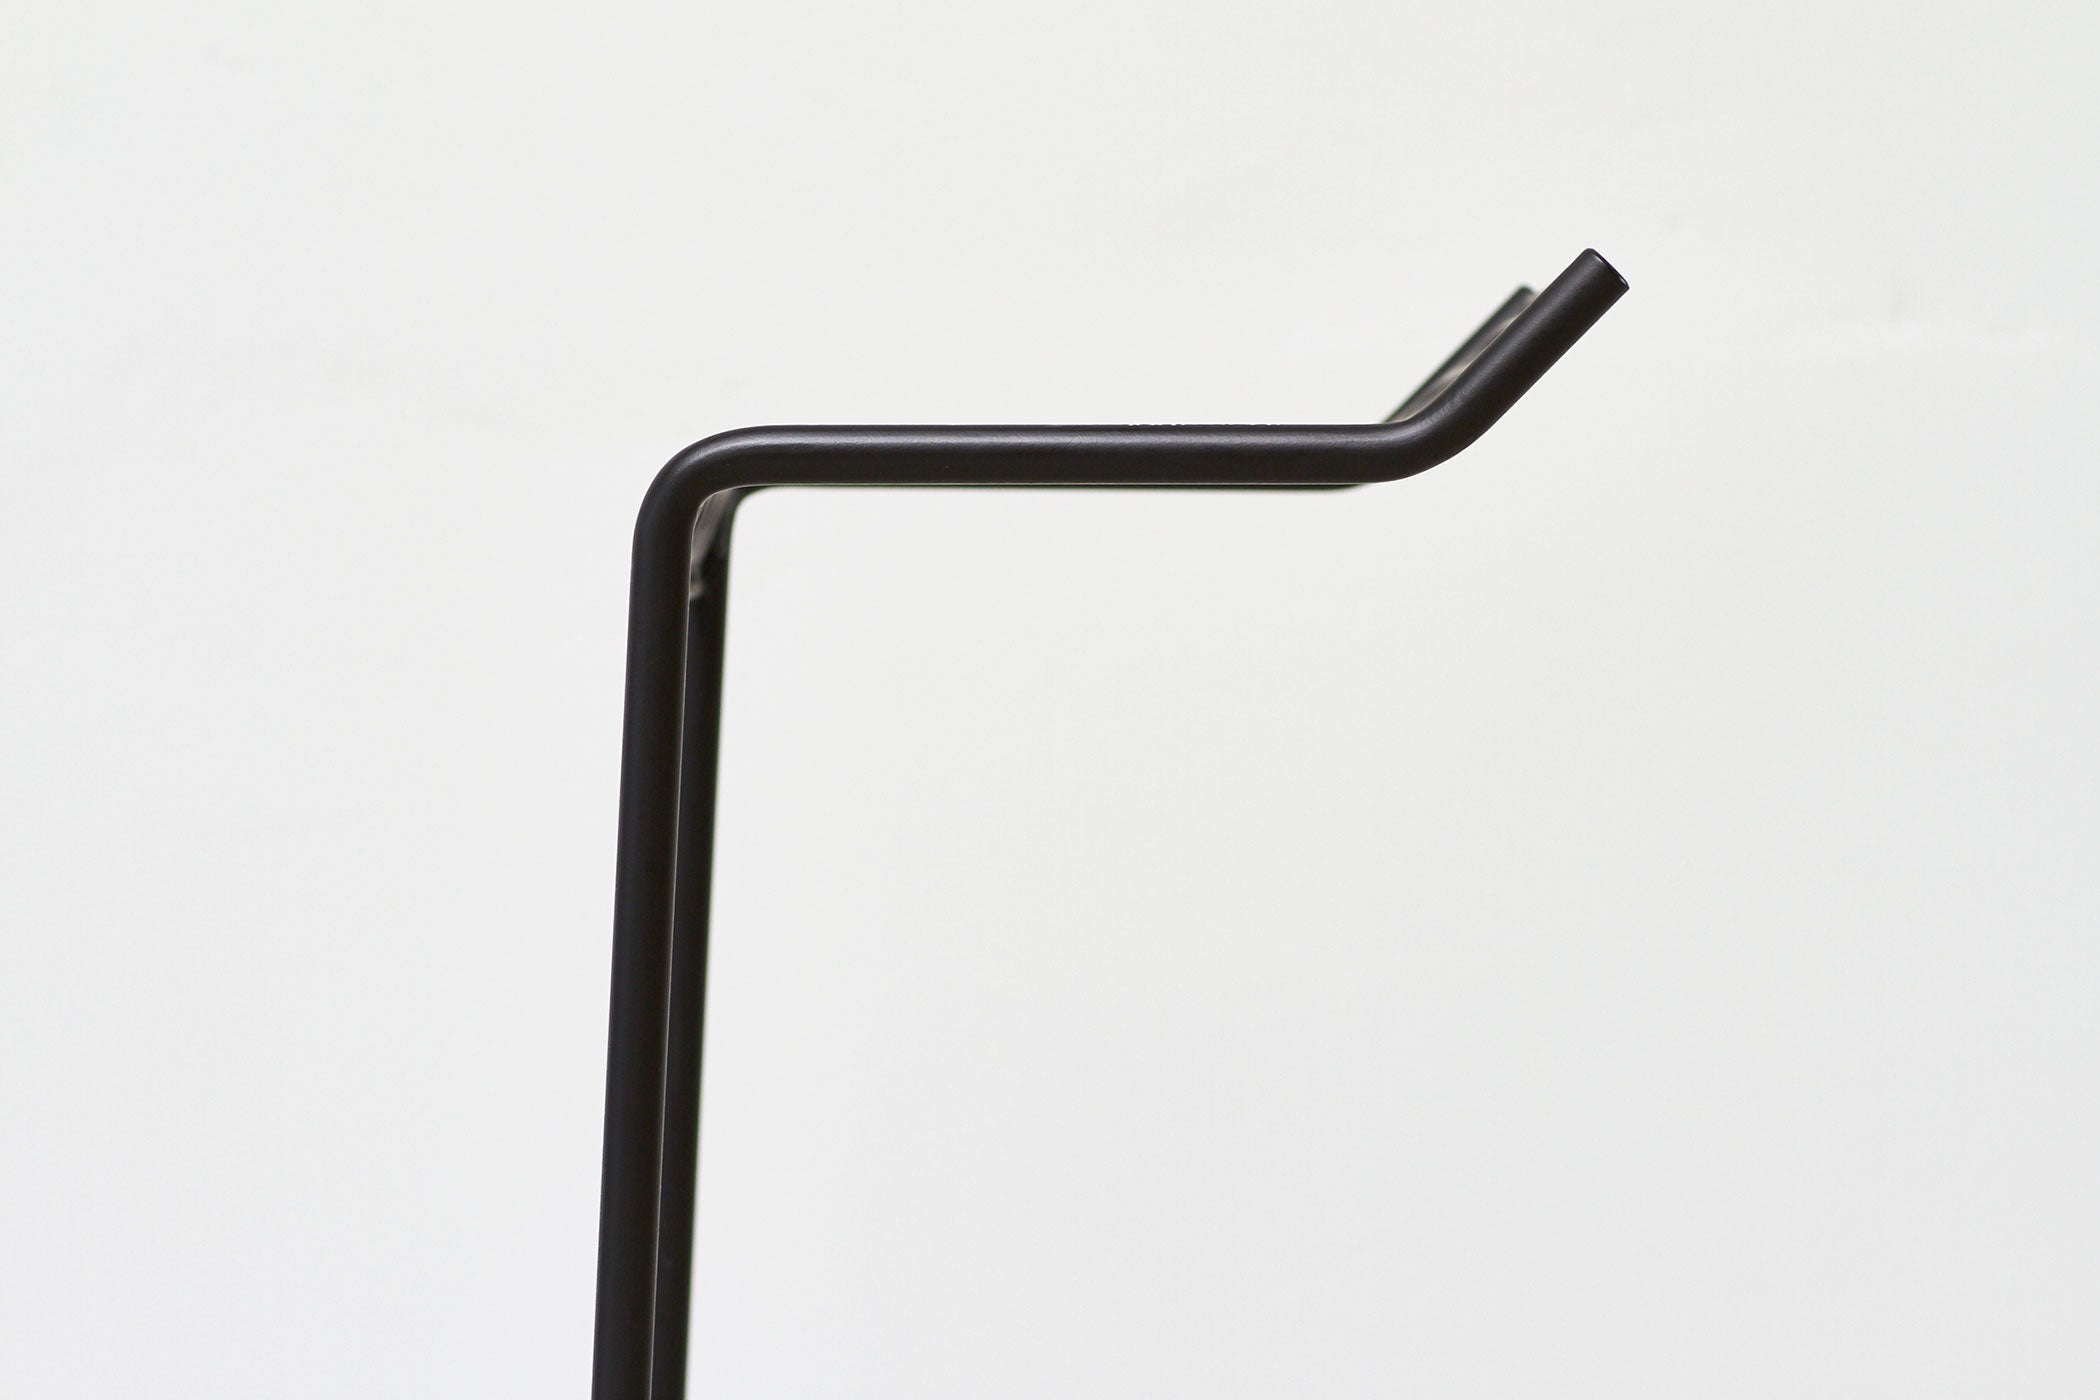 RAD Furniture's Perforated Bar Stool - profile detail